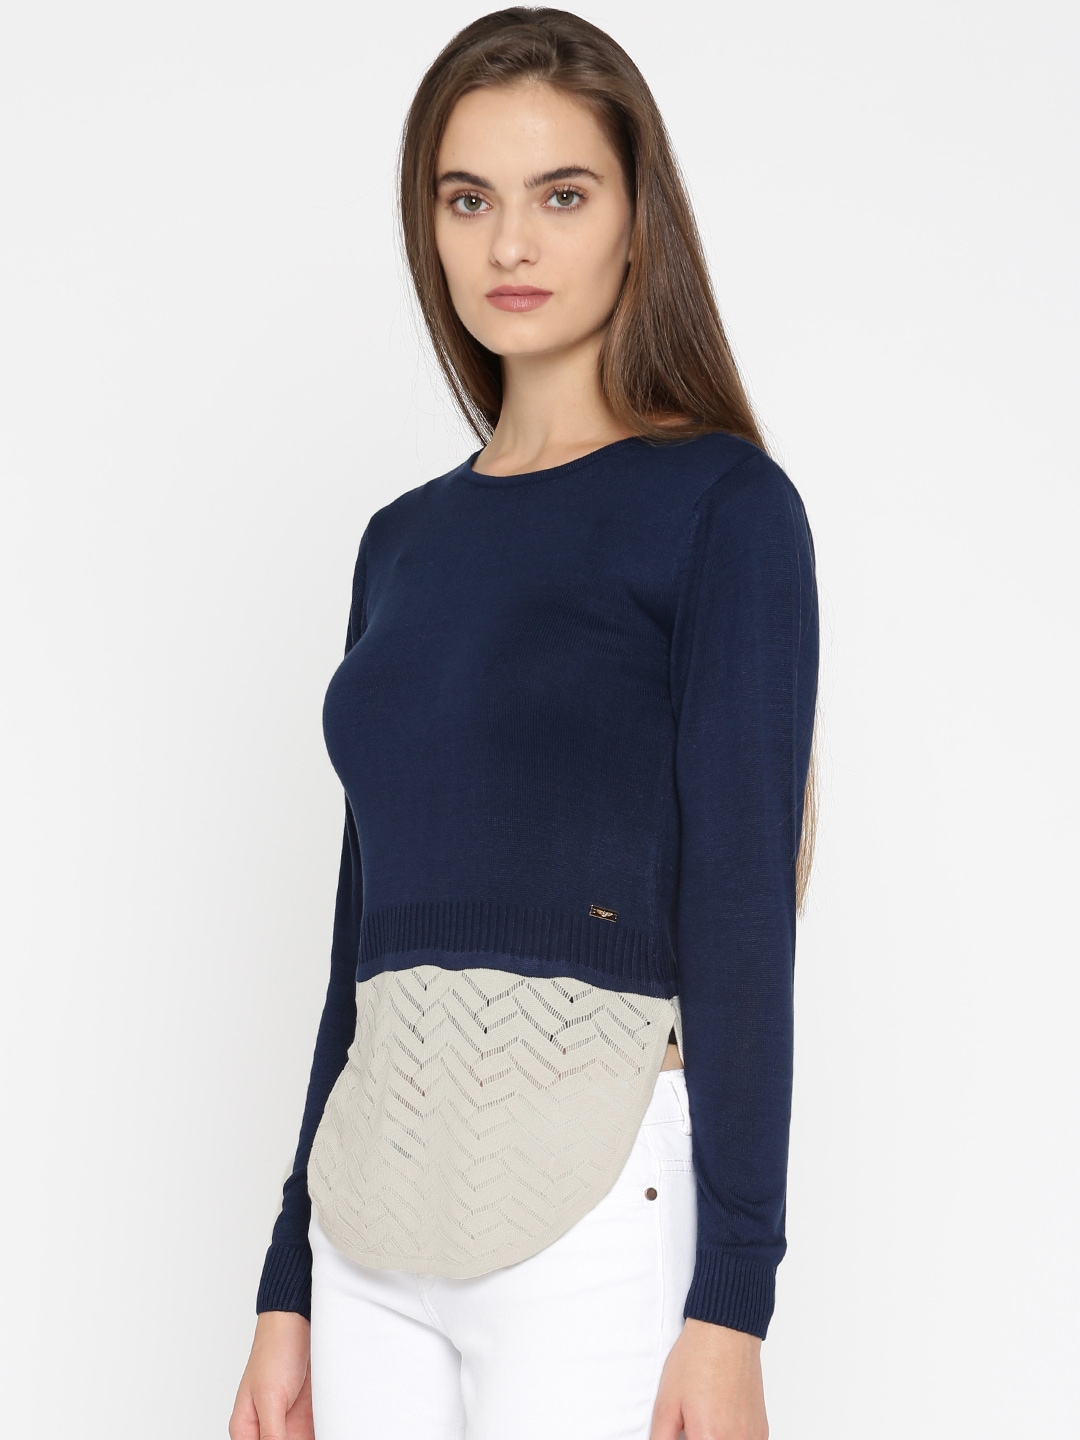 Park Avenue Woman Blue & Grey Colourblocked Pullover Sweater image